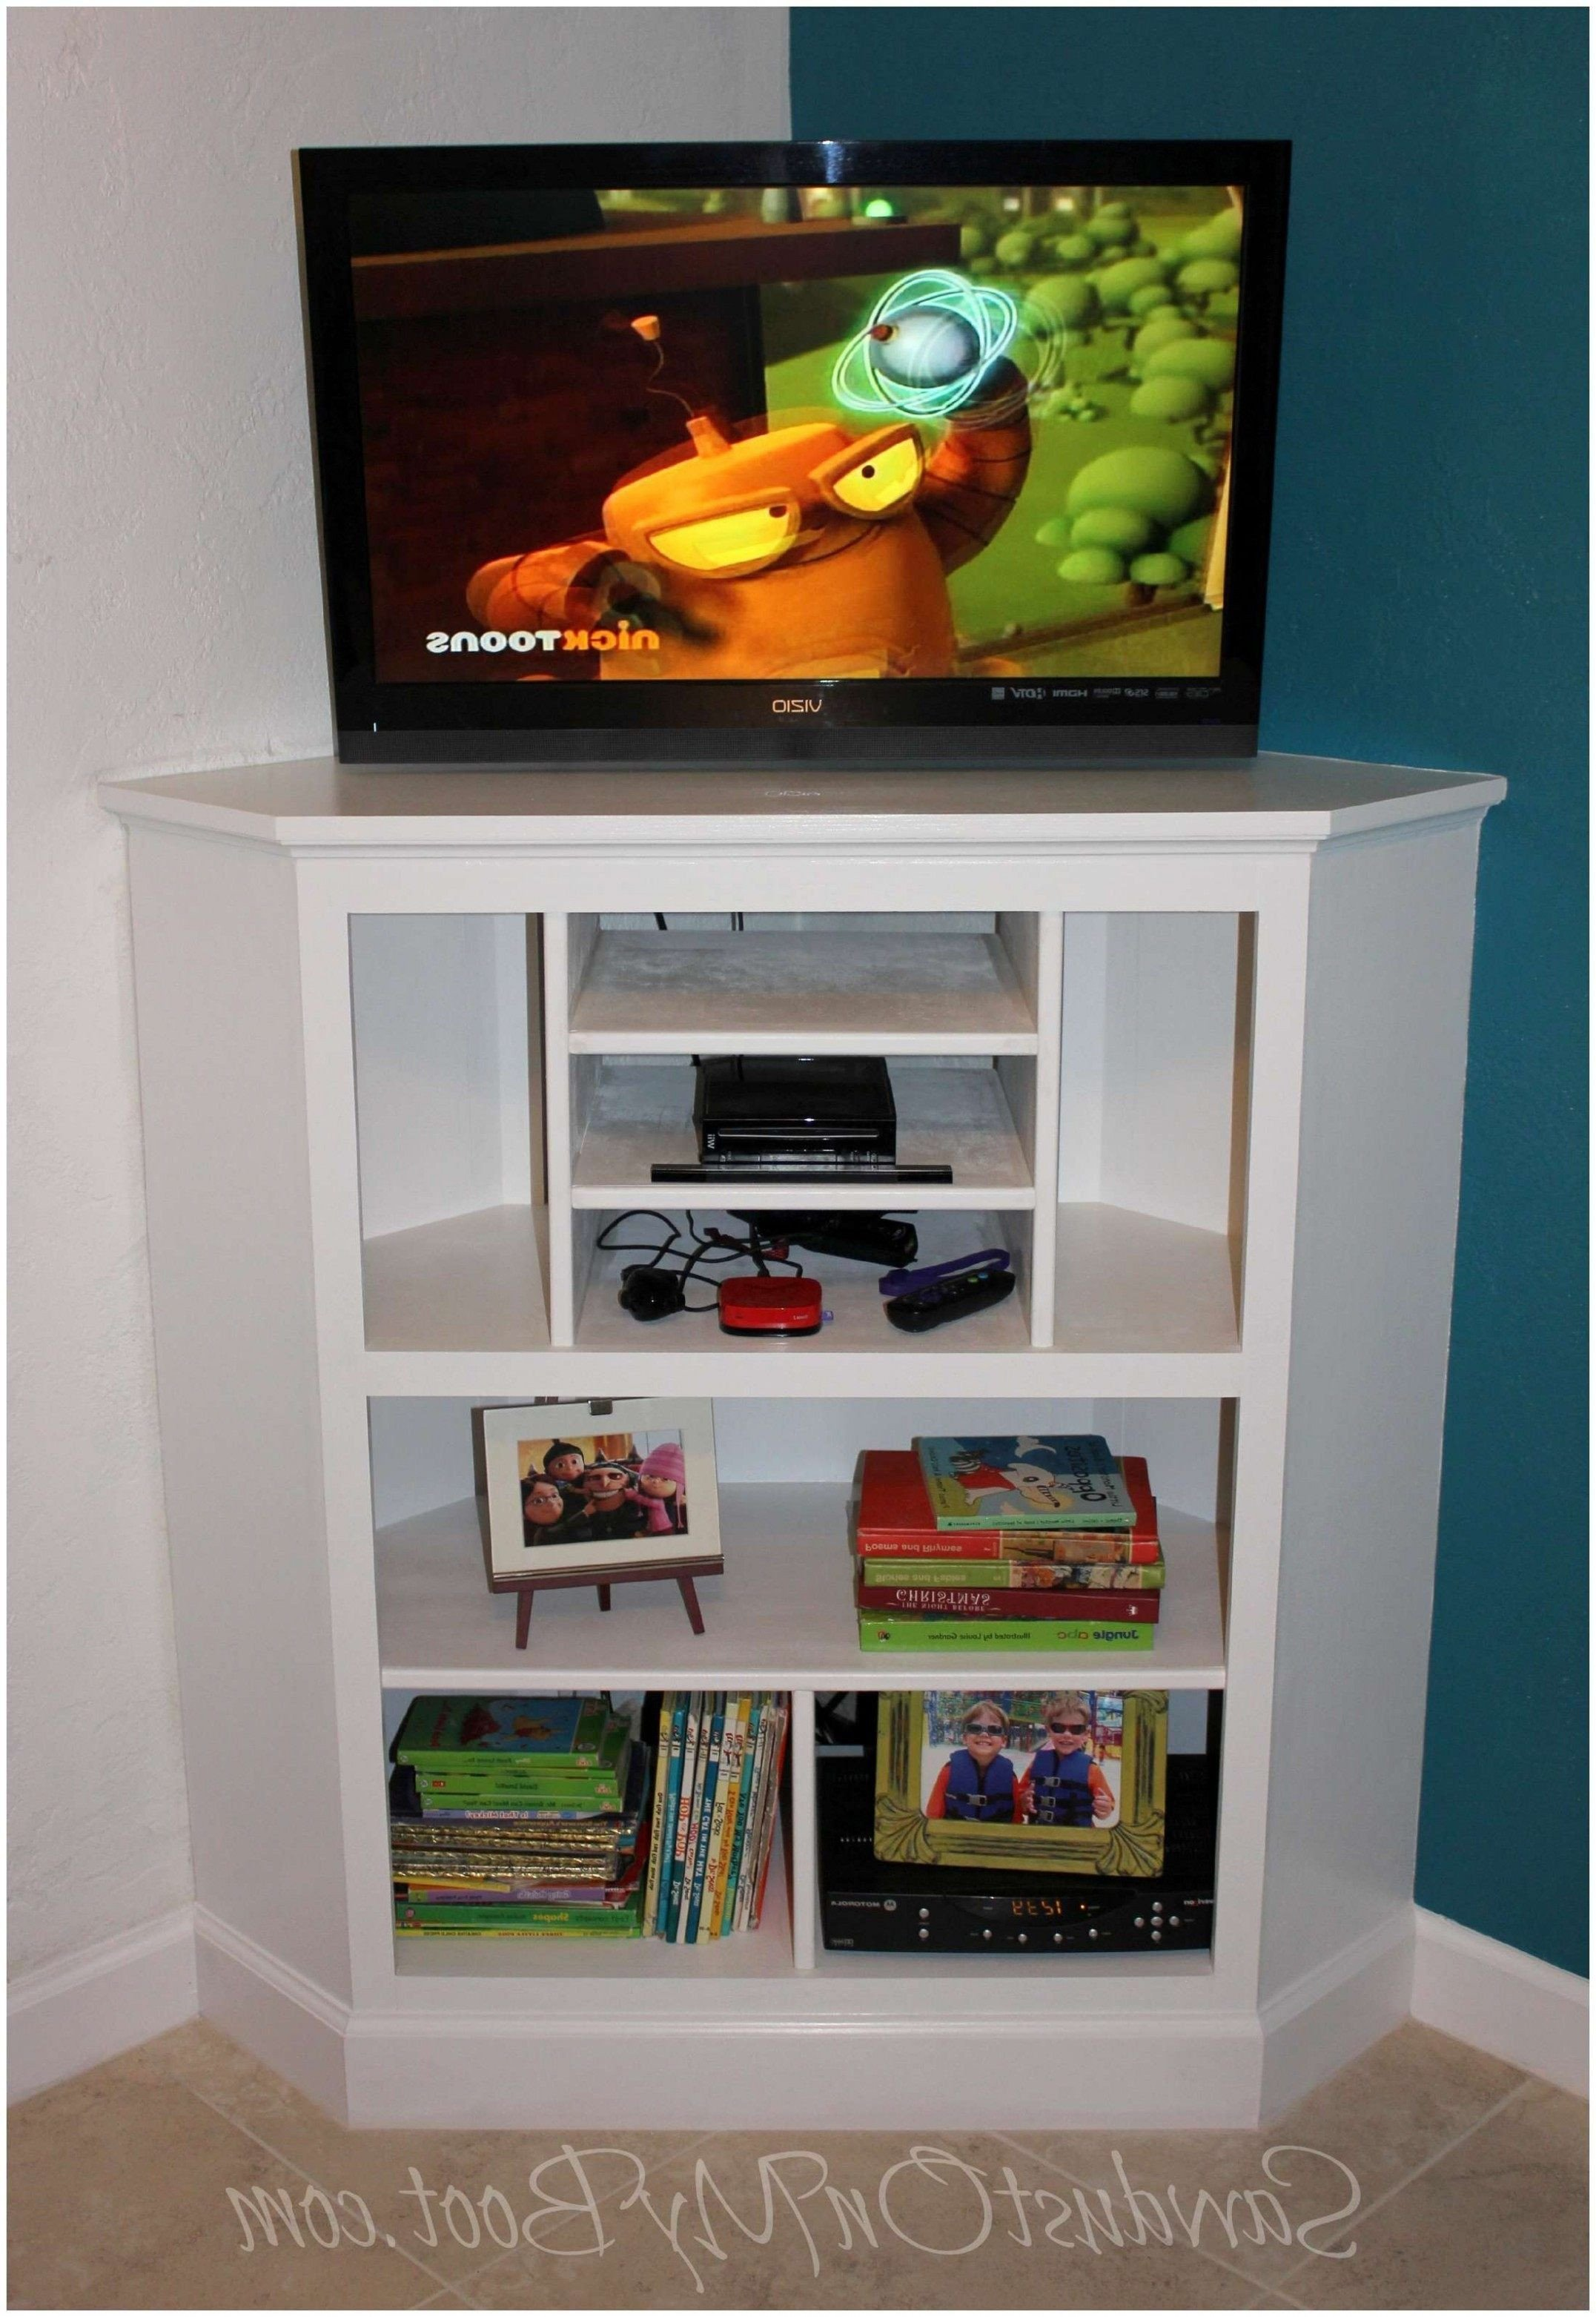 Tall Tv Stand for Bedroom New Bedroom Tv Stand Dresser Inspirational Bedroom Tv Stand